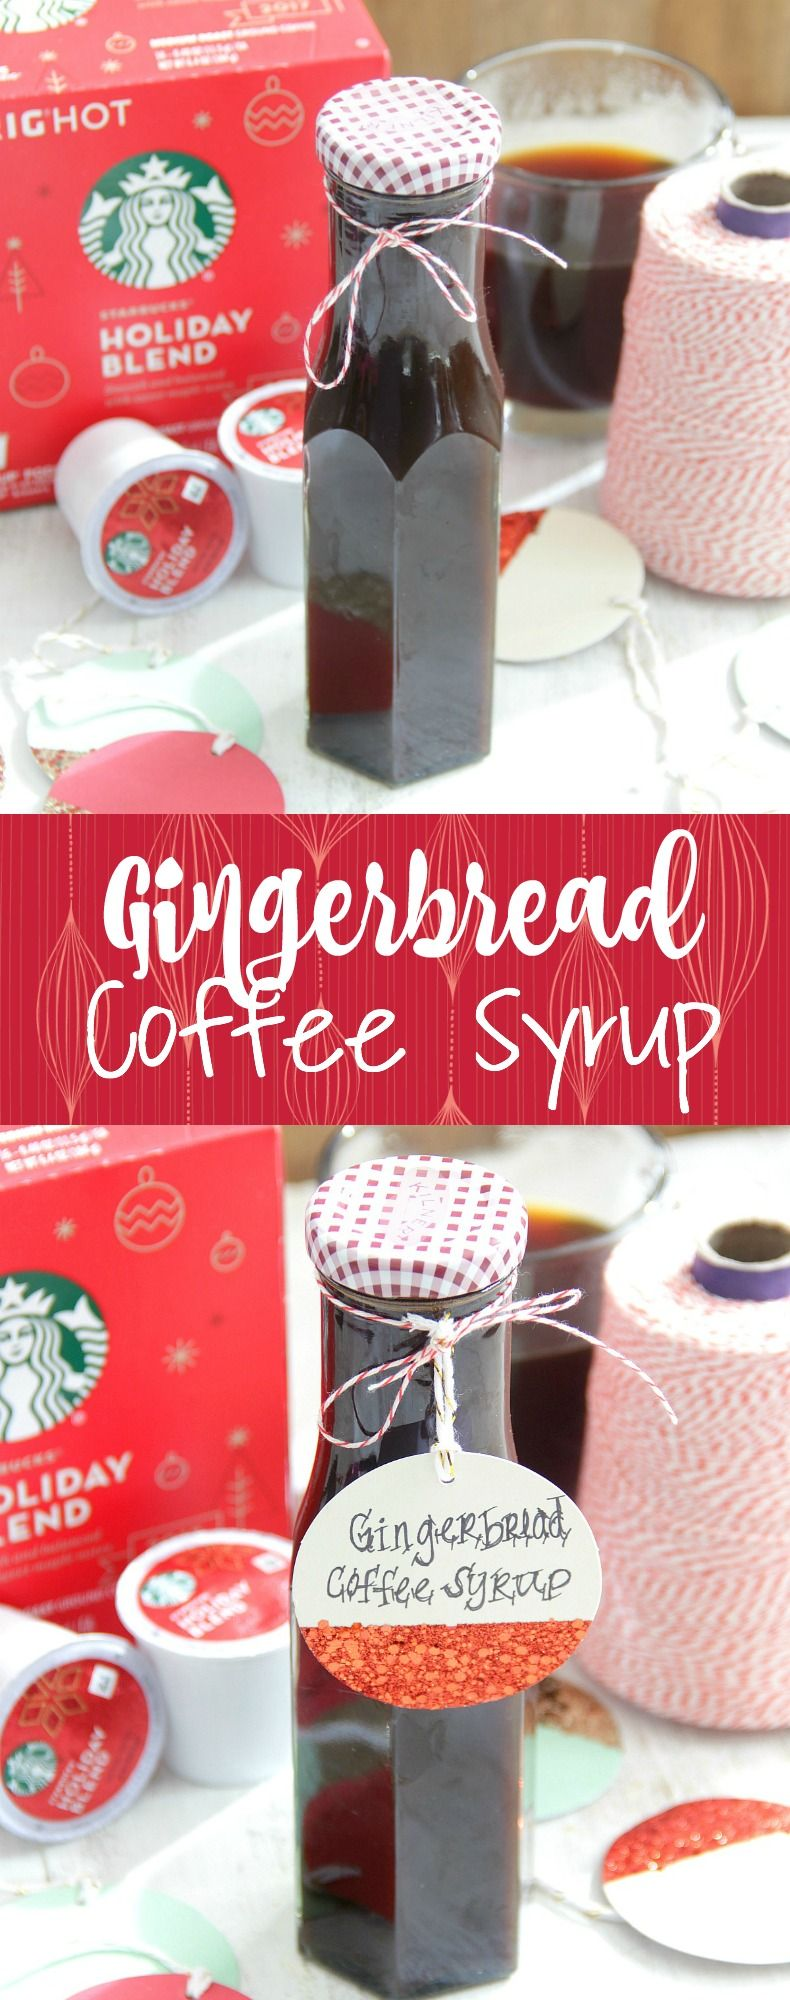 Gingerbread Coffee Syrup Makes for great homemade gifts